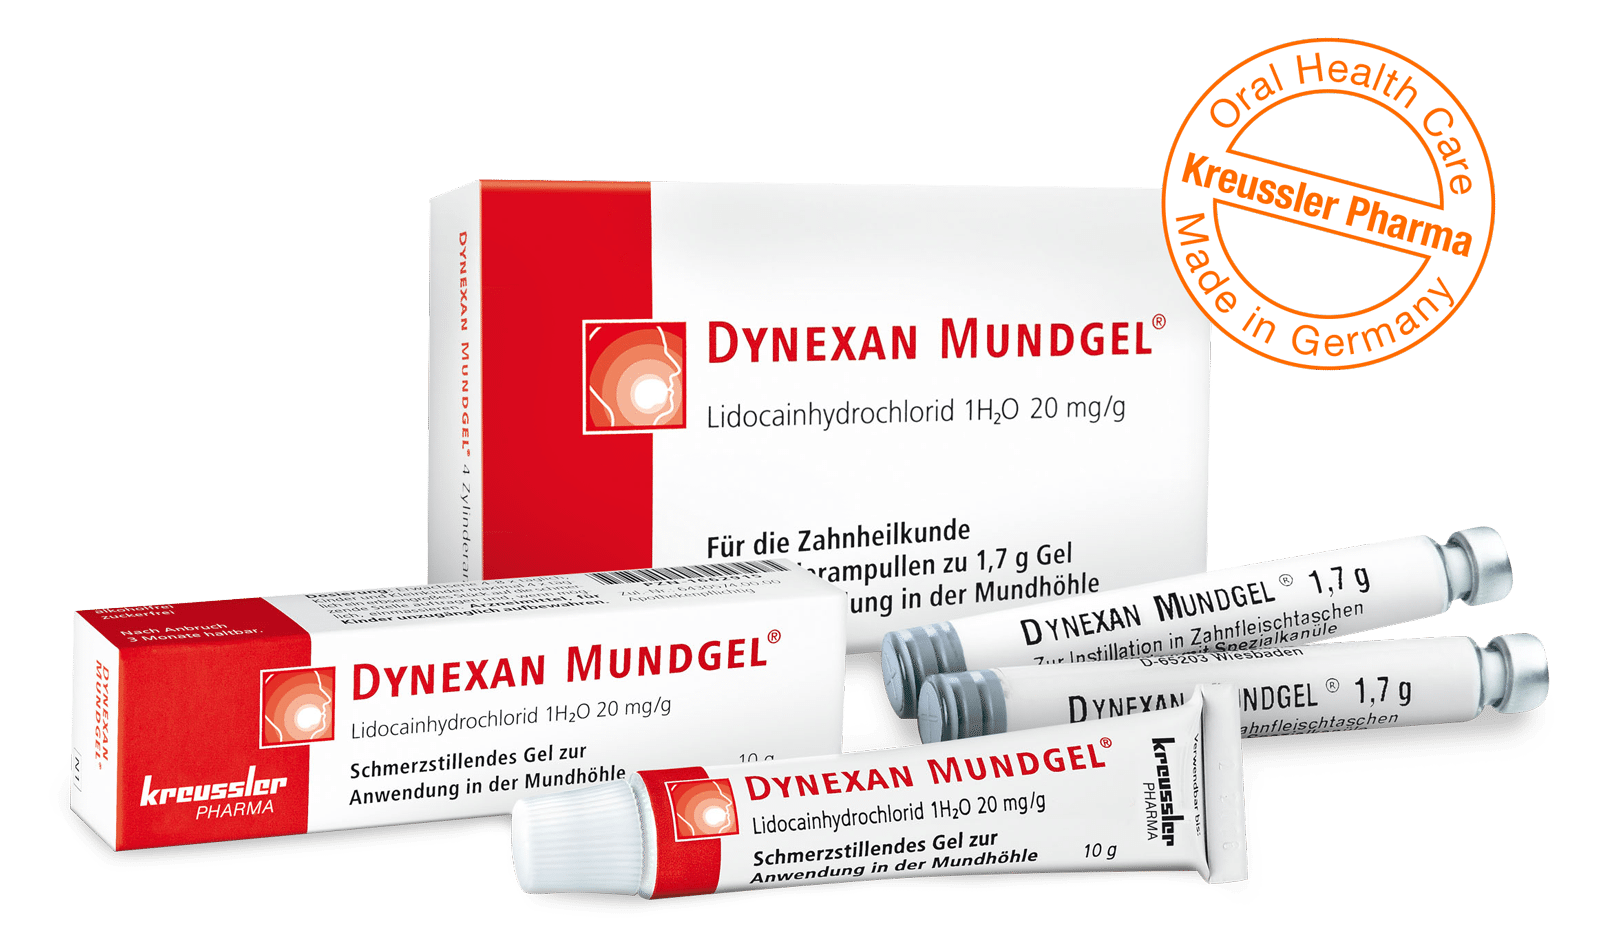 Kreussler Pharma - DYNEXAN MOUTH GEL - Tube and cylindrical ampoules